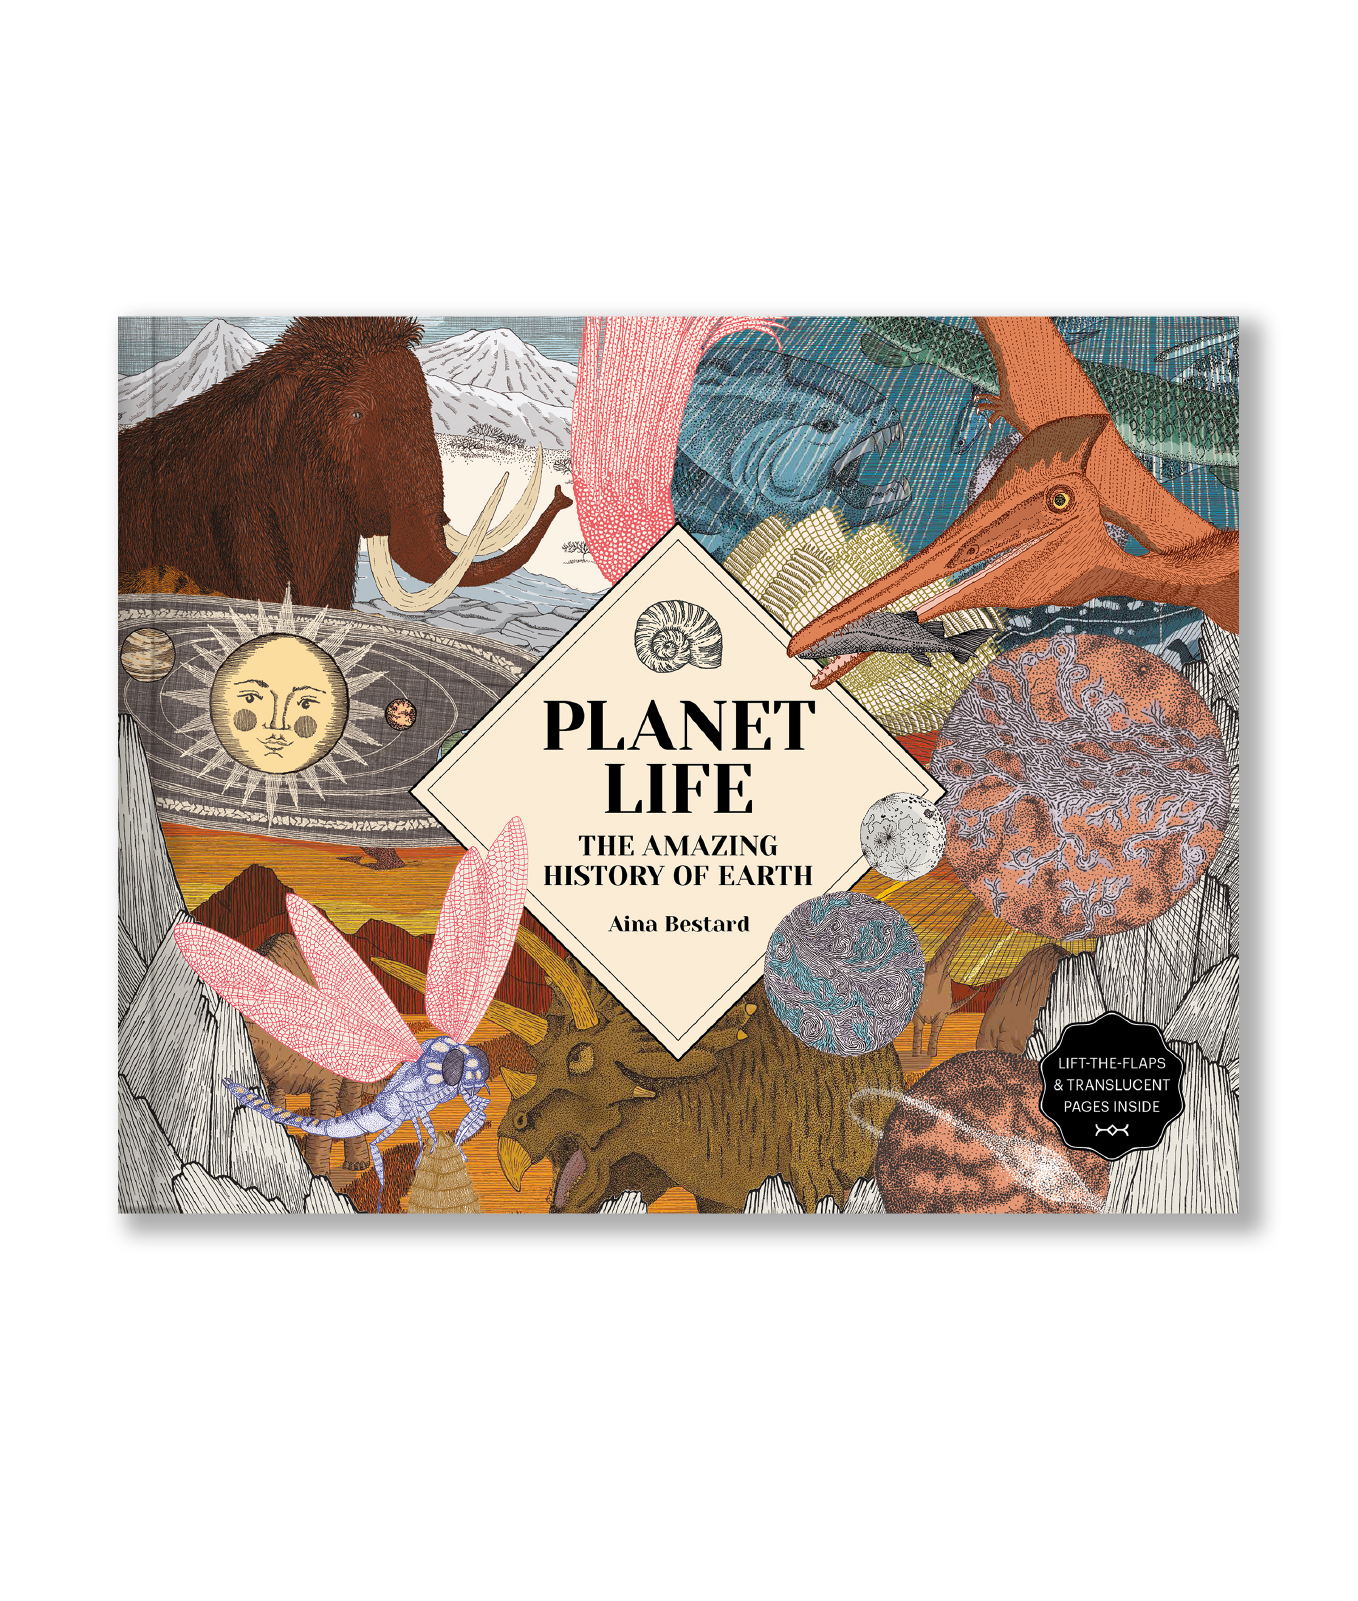 Planet Life: The Amazing History of Earth